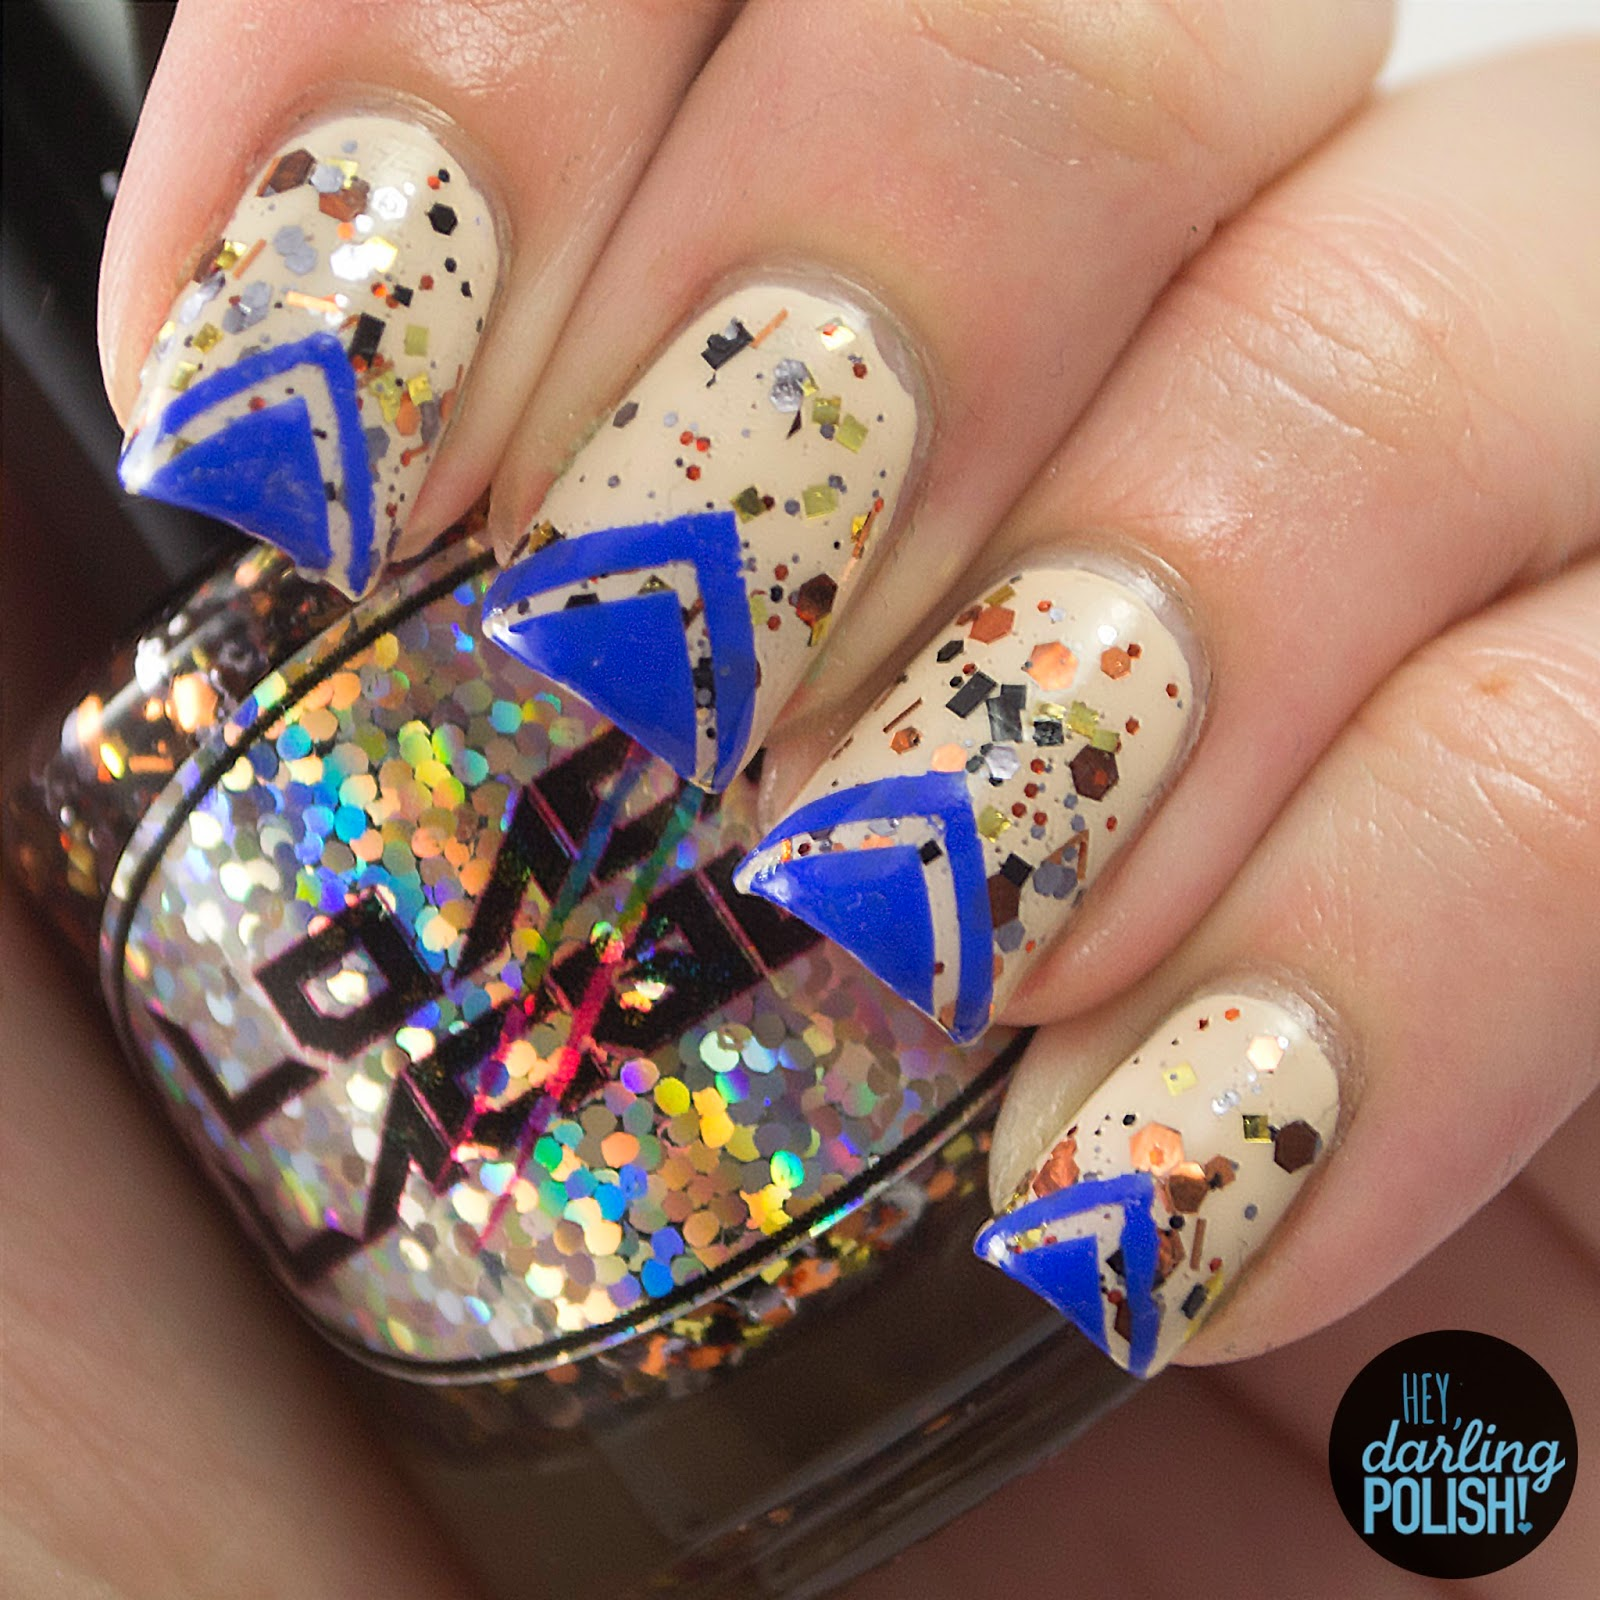 nails, nail art, nail polish, polish, indie, indie polish, indie nail polish, loaded lacquer, hey darling polish, triangles, blue, the never ending pile challenge, tgpnpc